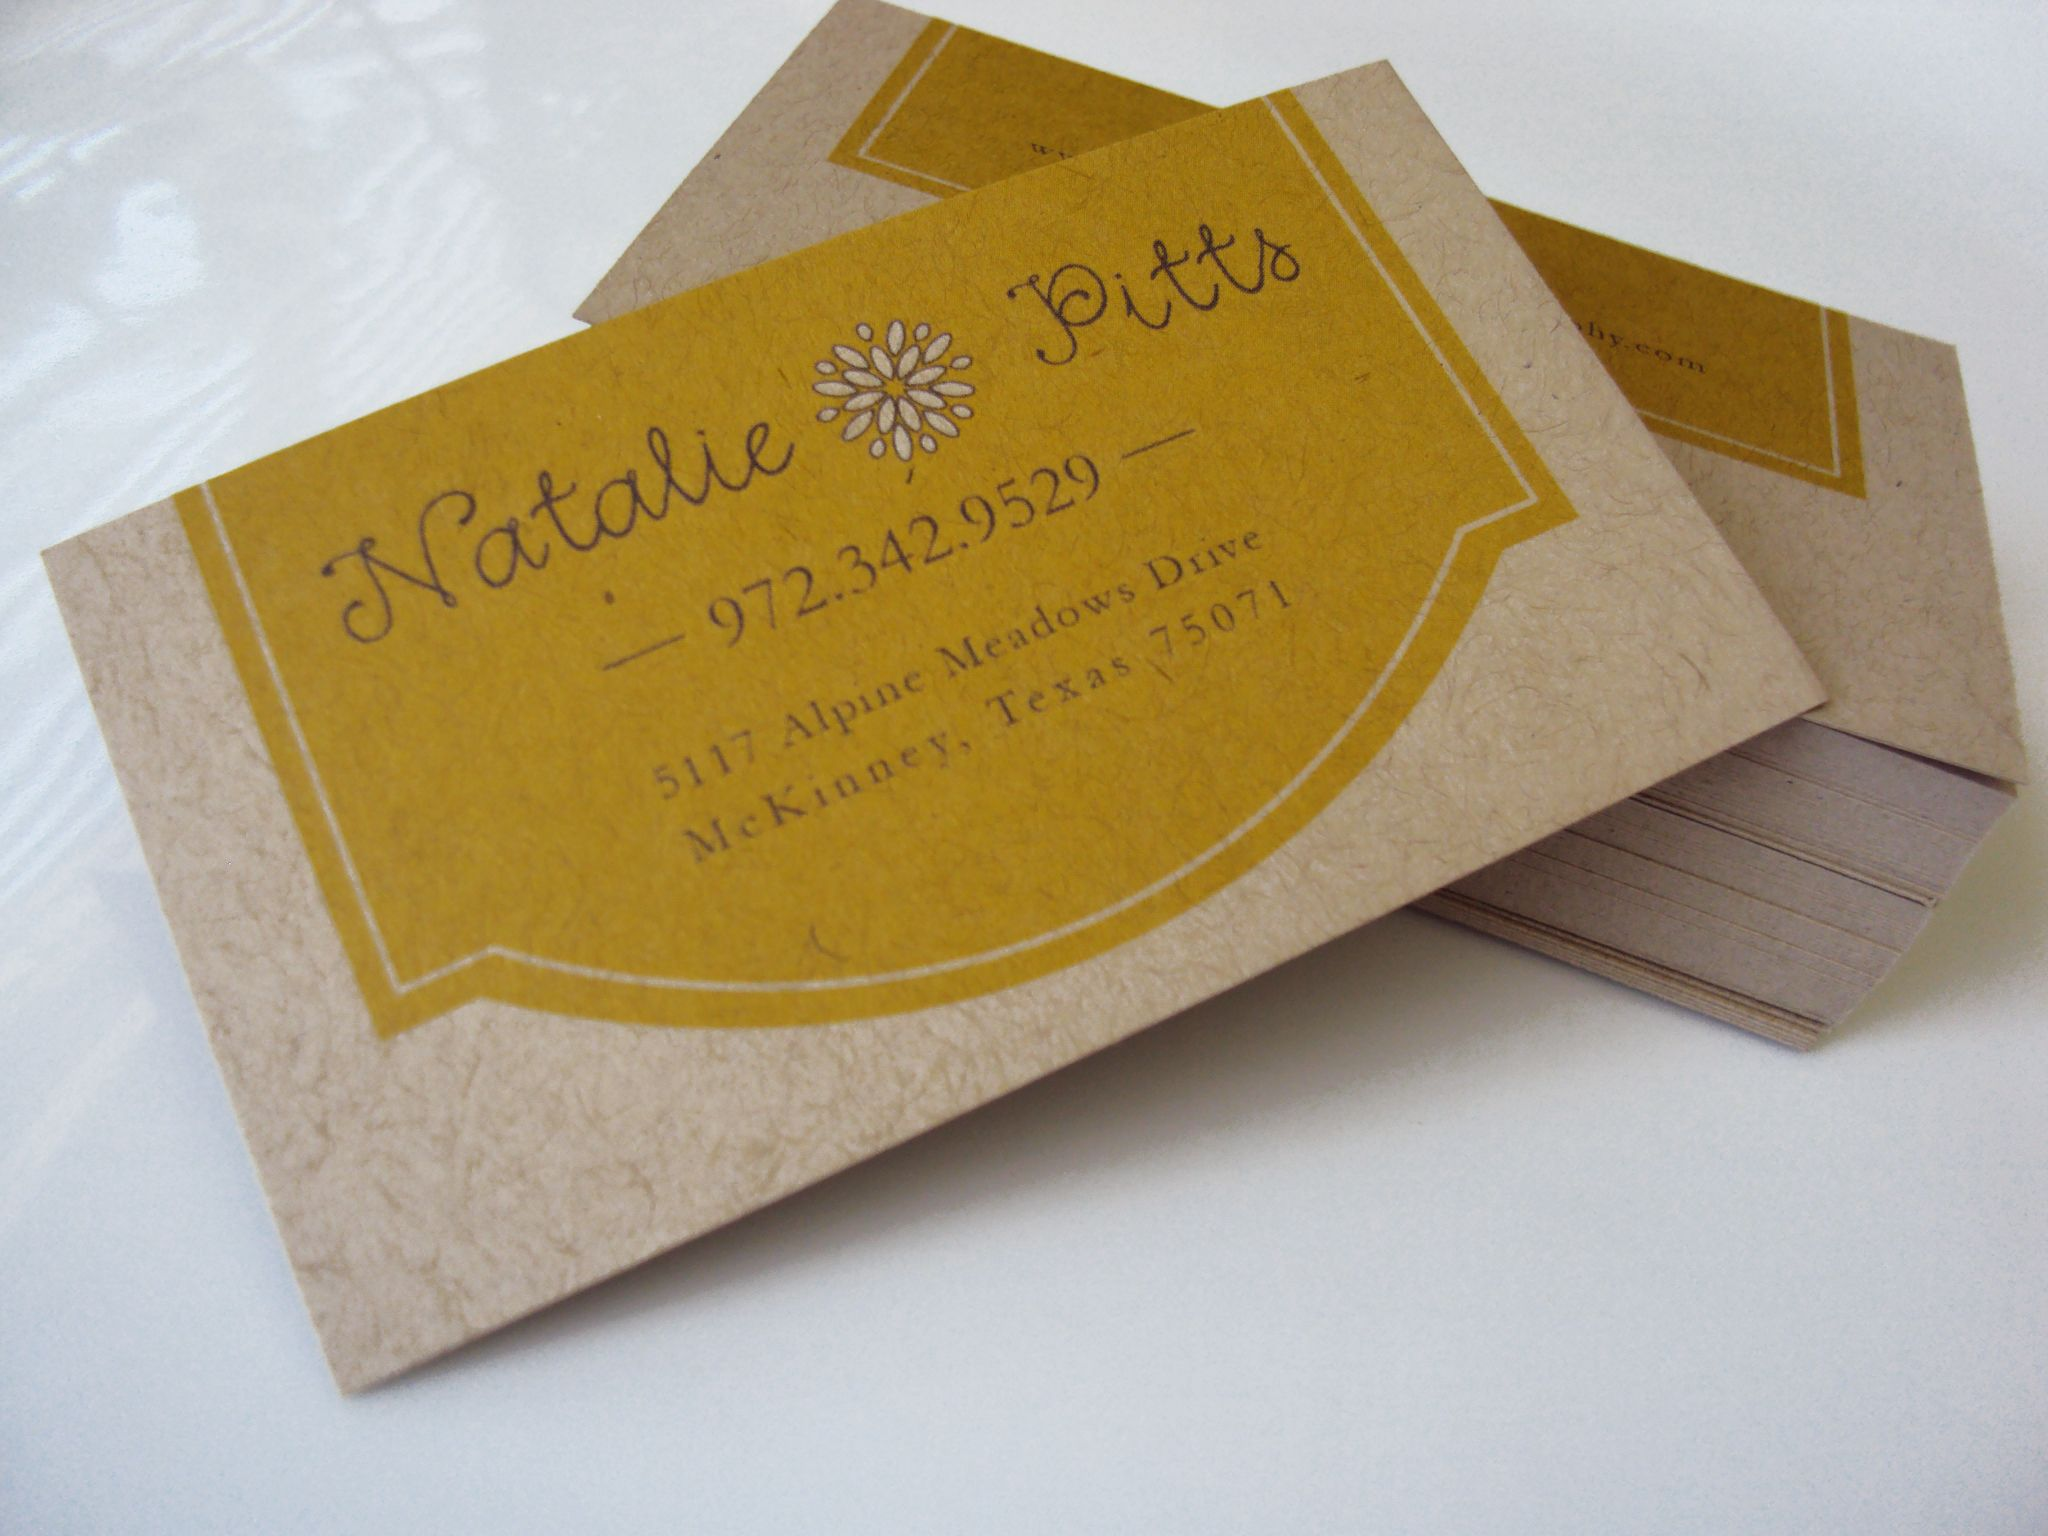 Kraft Paper Business Cards for Natalie Pitts photography | Cd cases ...